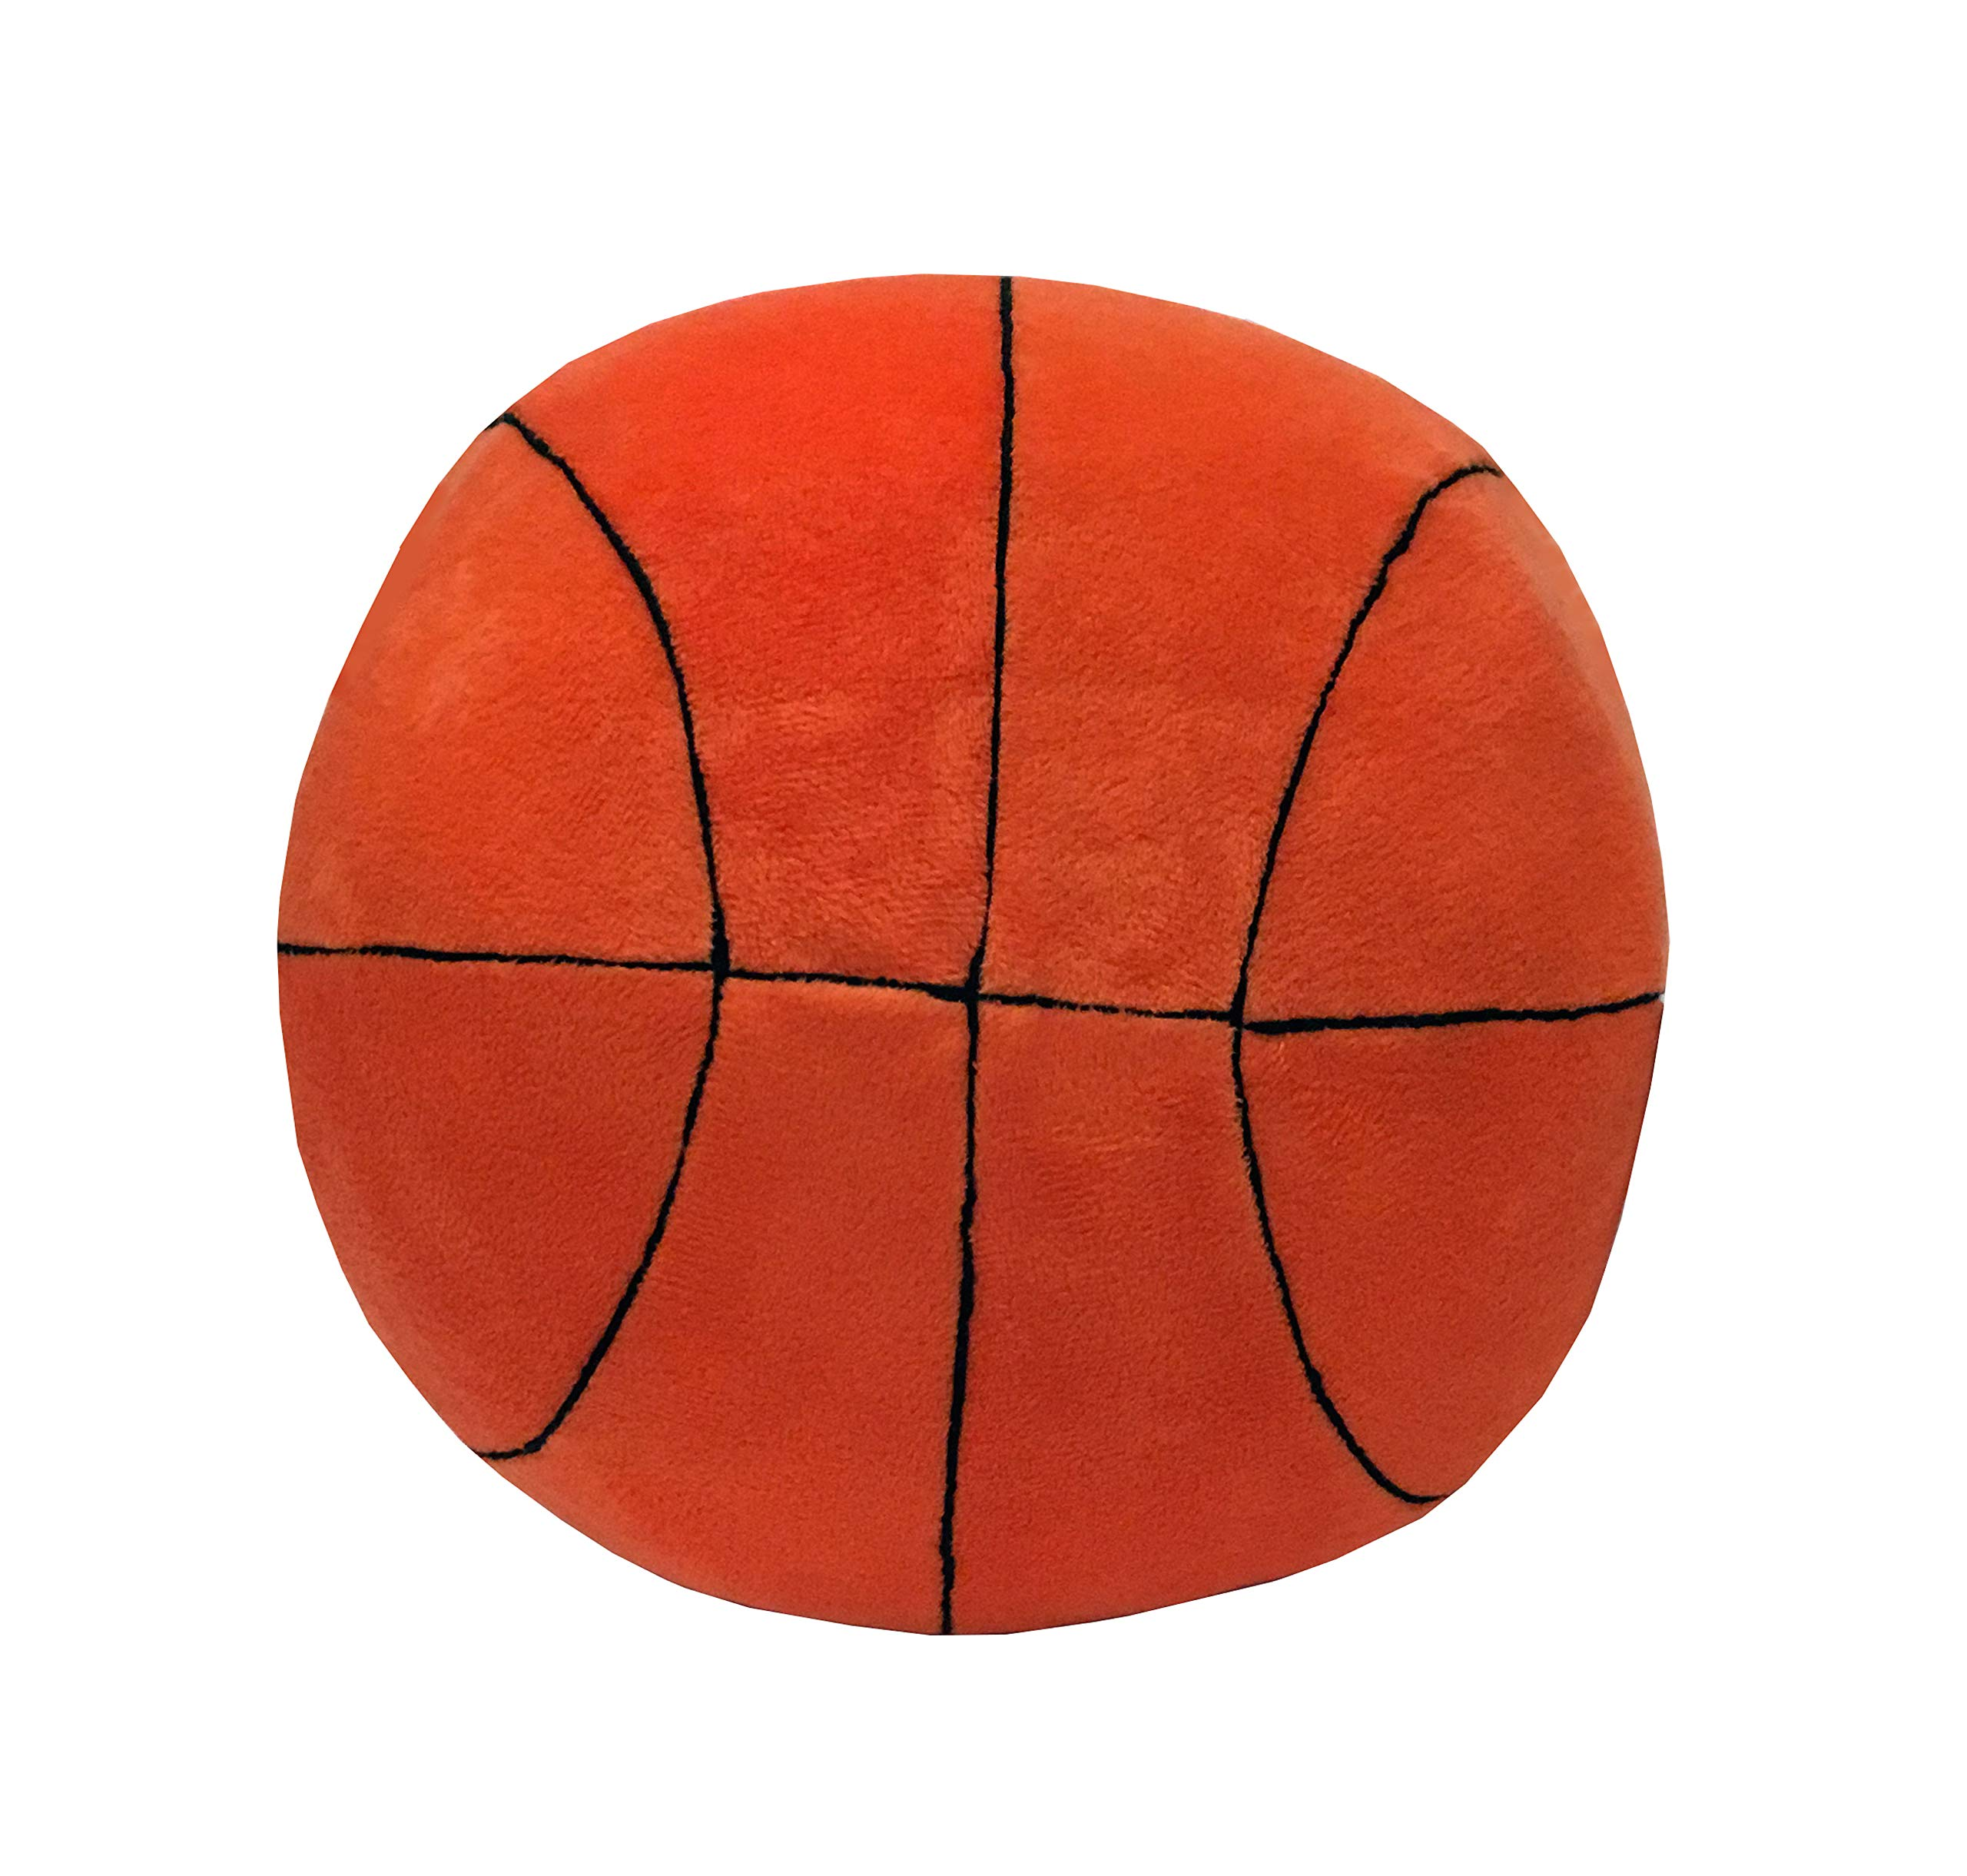 Simple Brilliance Basketball Pillow 11'' Round Soft Plush Basketball Sports Pillow Sports Toy Gift